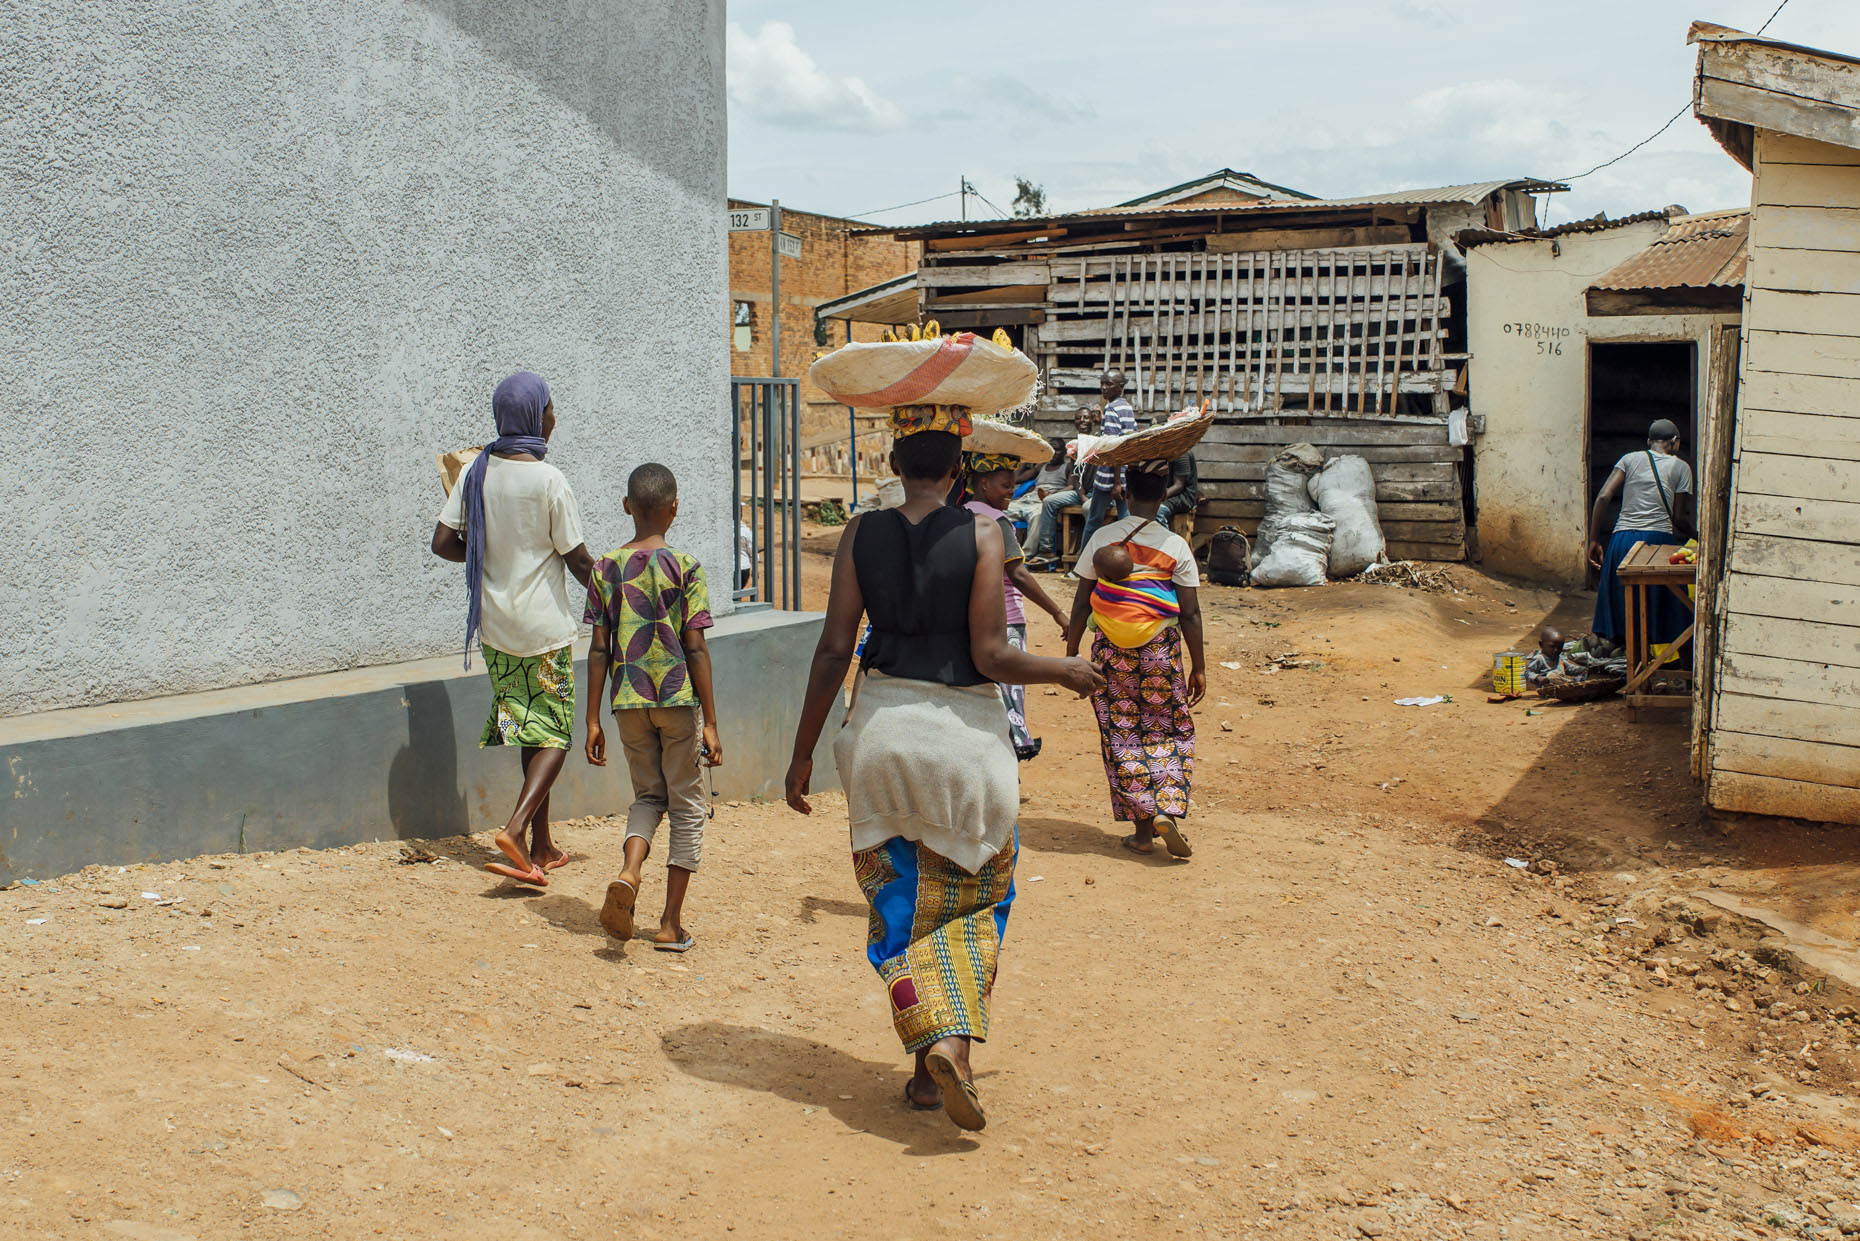 Inti St Clair photo of women carrying food baskets on head in Kigali Rwanda